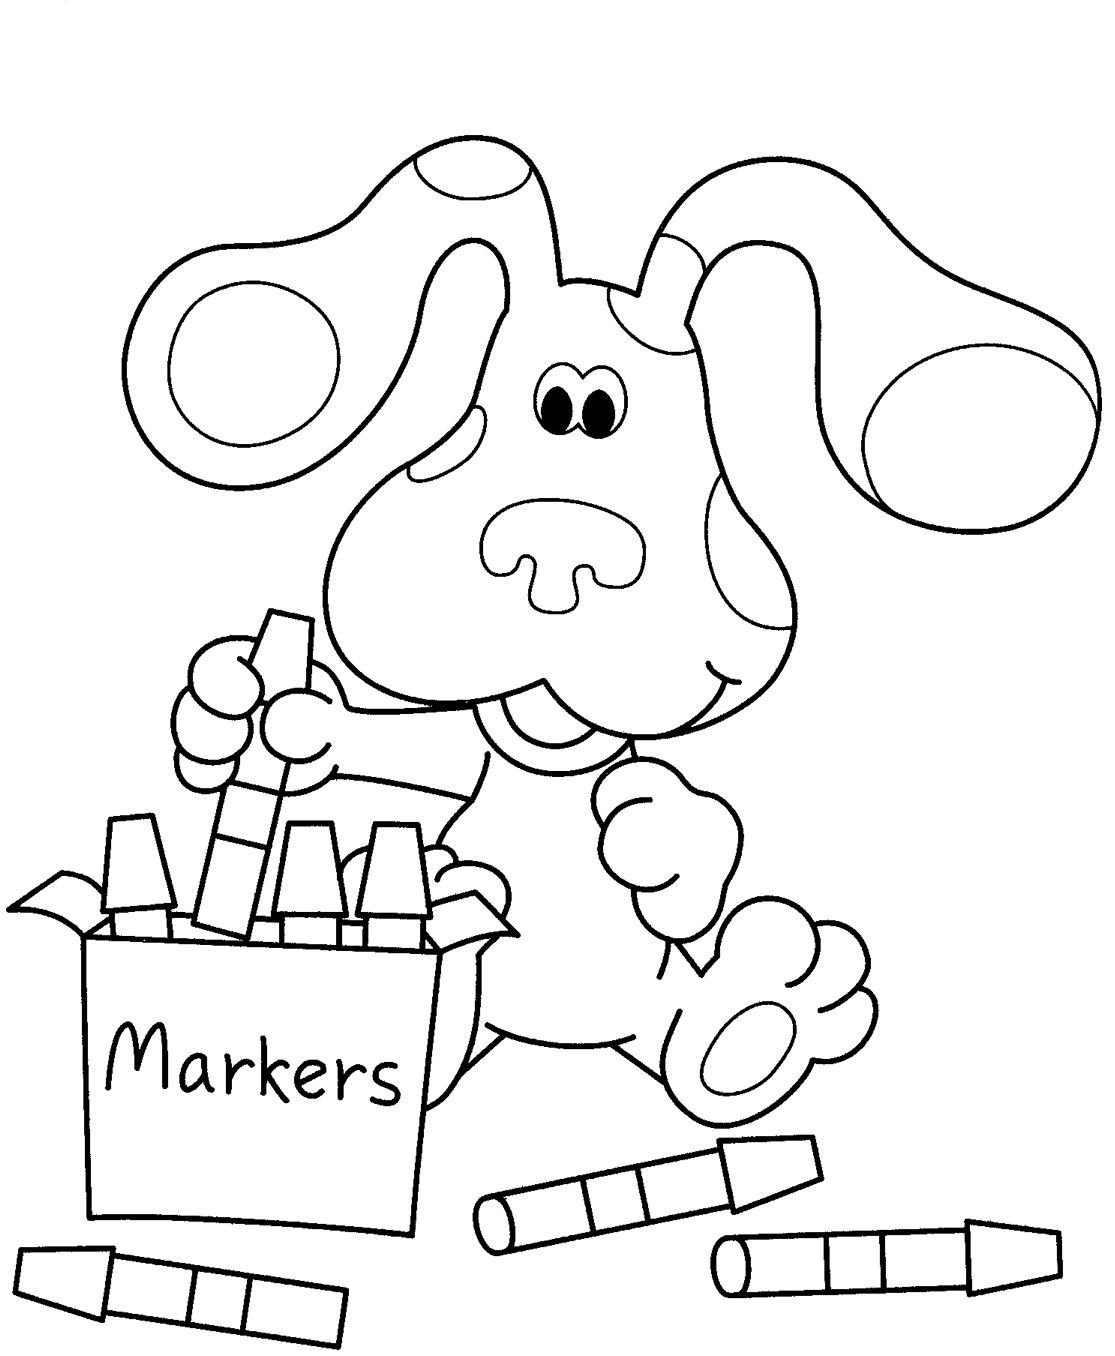 Nickelodeon Characters Coloring Pages Crayola Coloring Pages Nick Jr Coloring Pages Free Coloring Pages